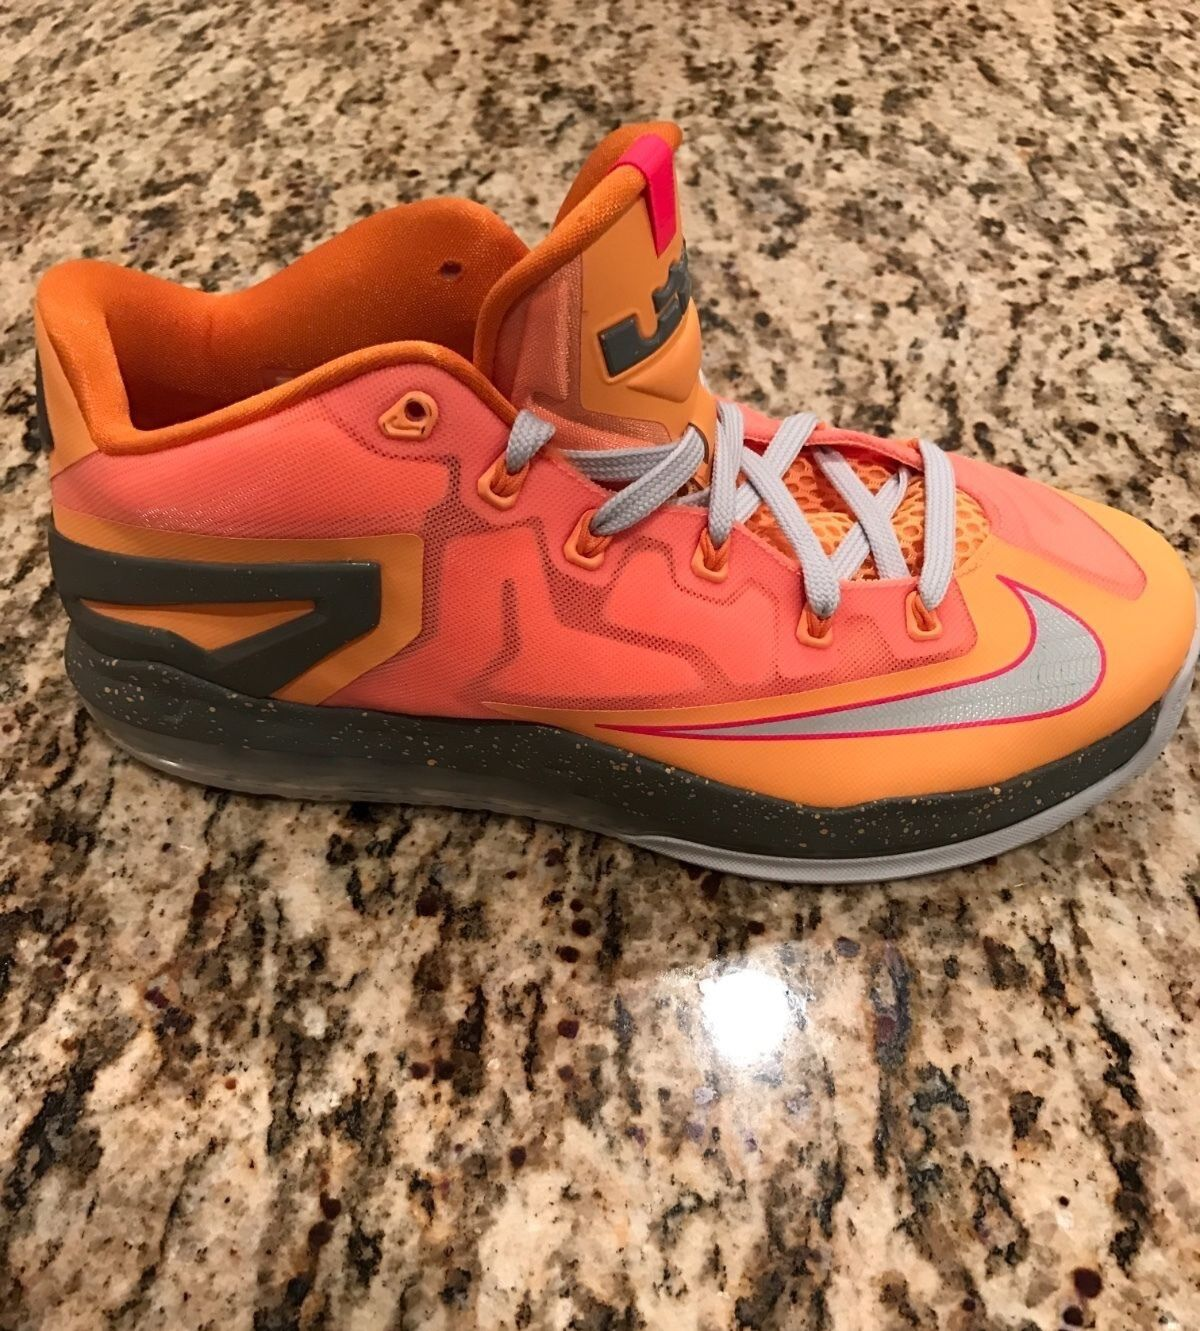 Lebron 11 Lows Floridian - Size 9.5 - Brand New -